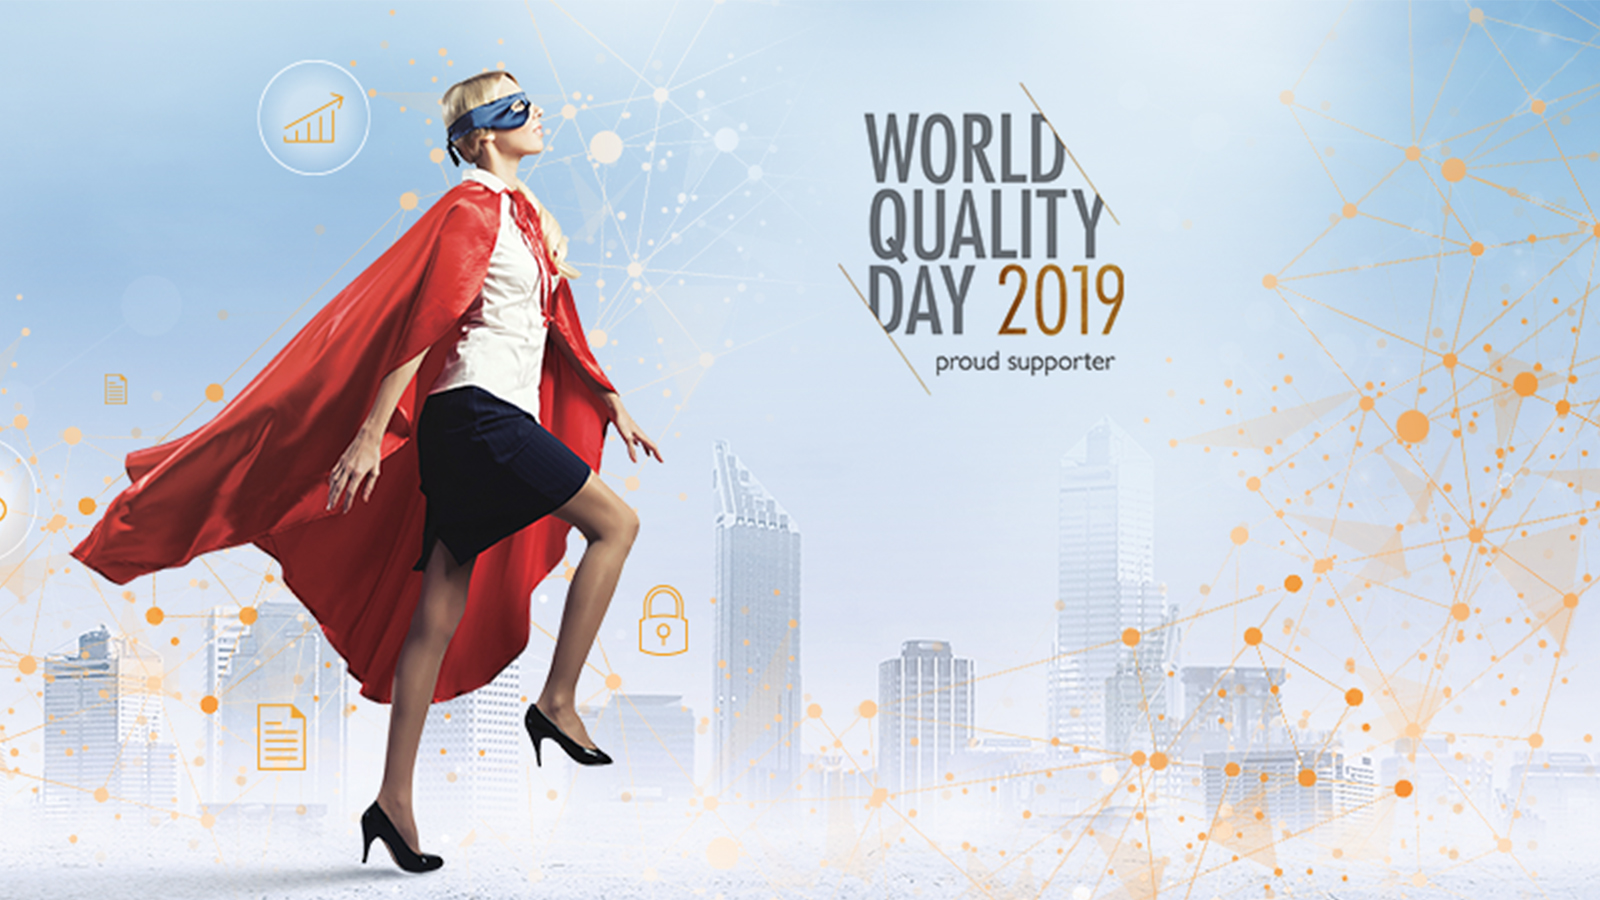 World Quality Day